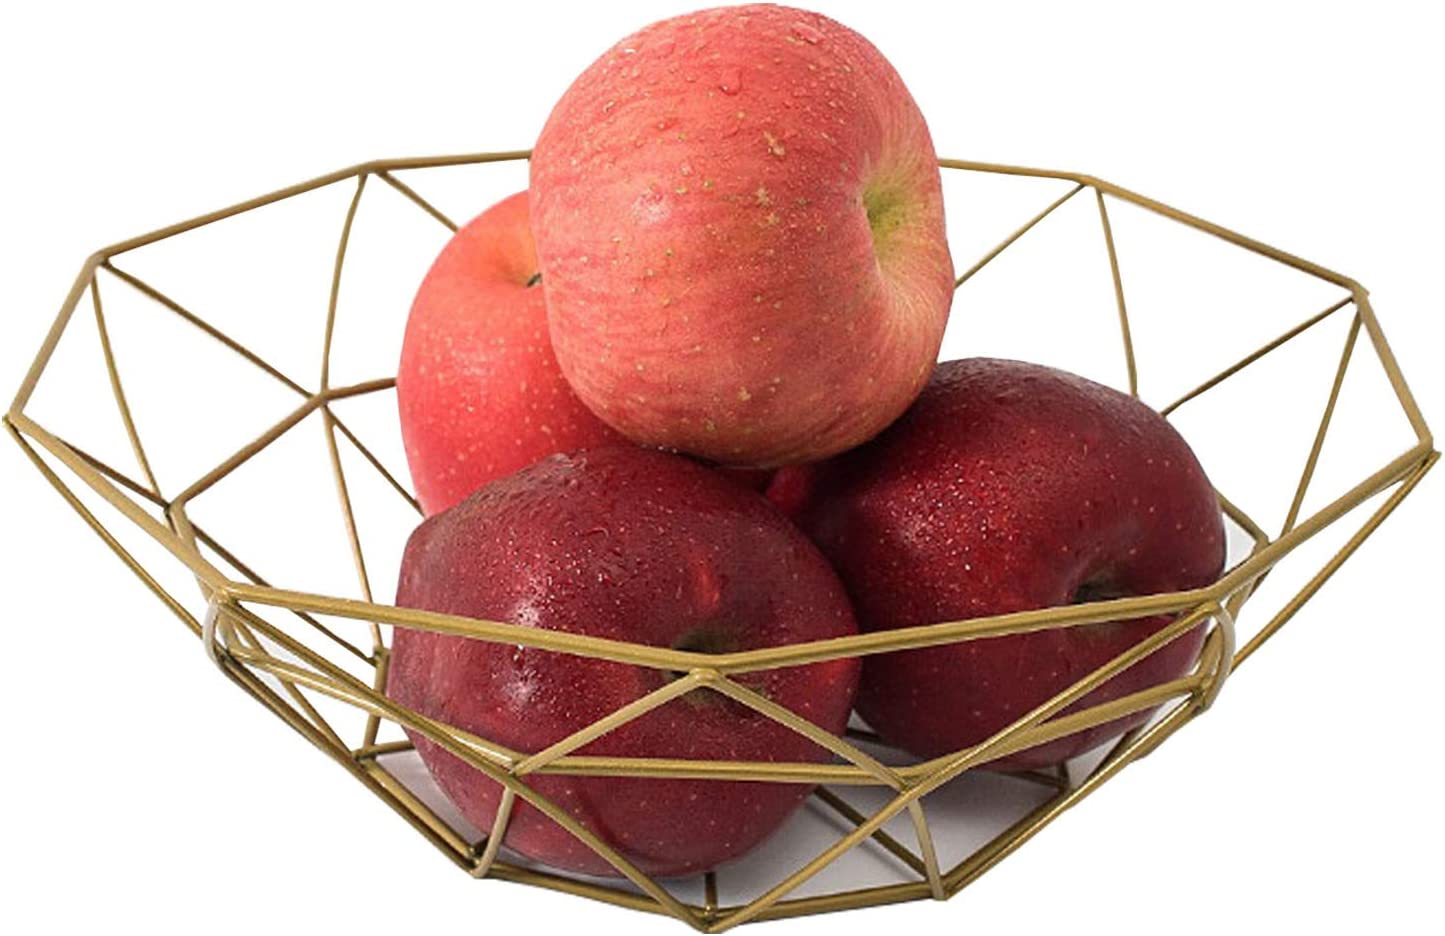 Fruit Stand Vegetables Serving Bowls Basket Holder for Kitchen Counters,Table Centerpiece,Farmhouse Decor,Party,Holiday Decoration,Metal Iron Wire,Modern Creative Stylish Single Tier Dish for Banana